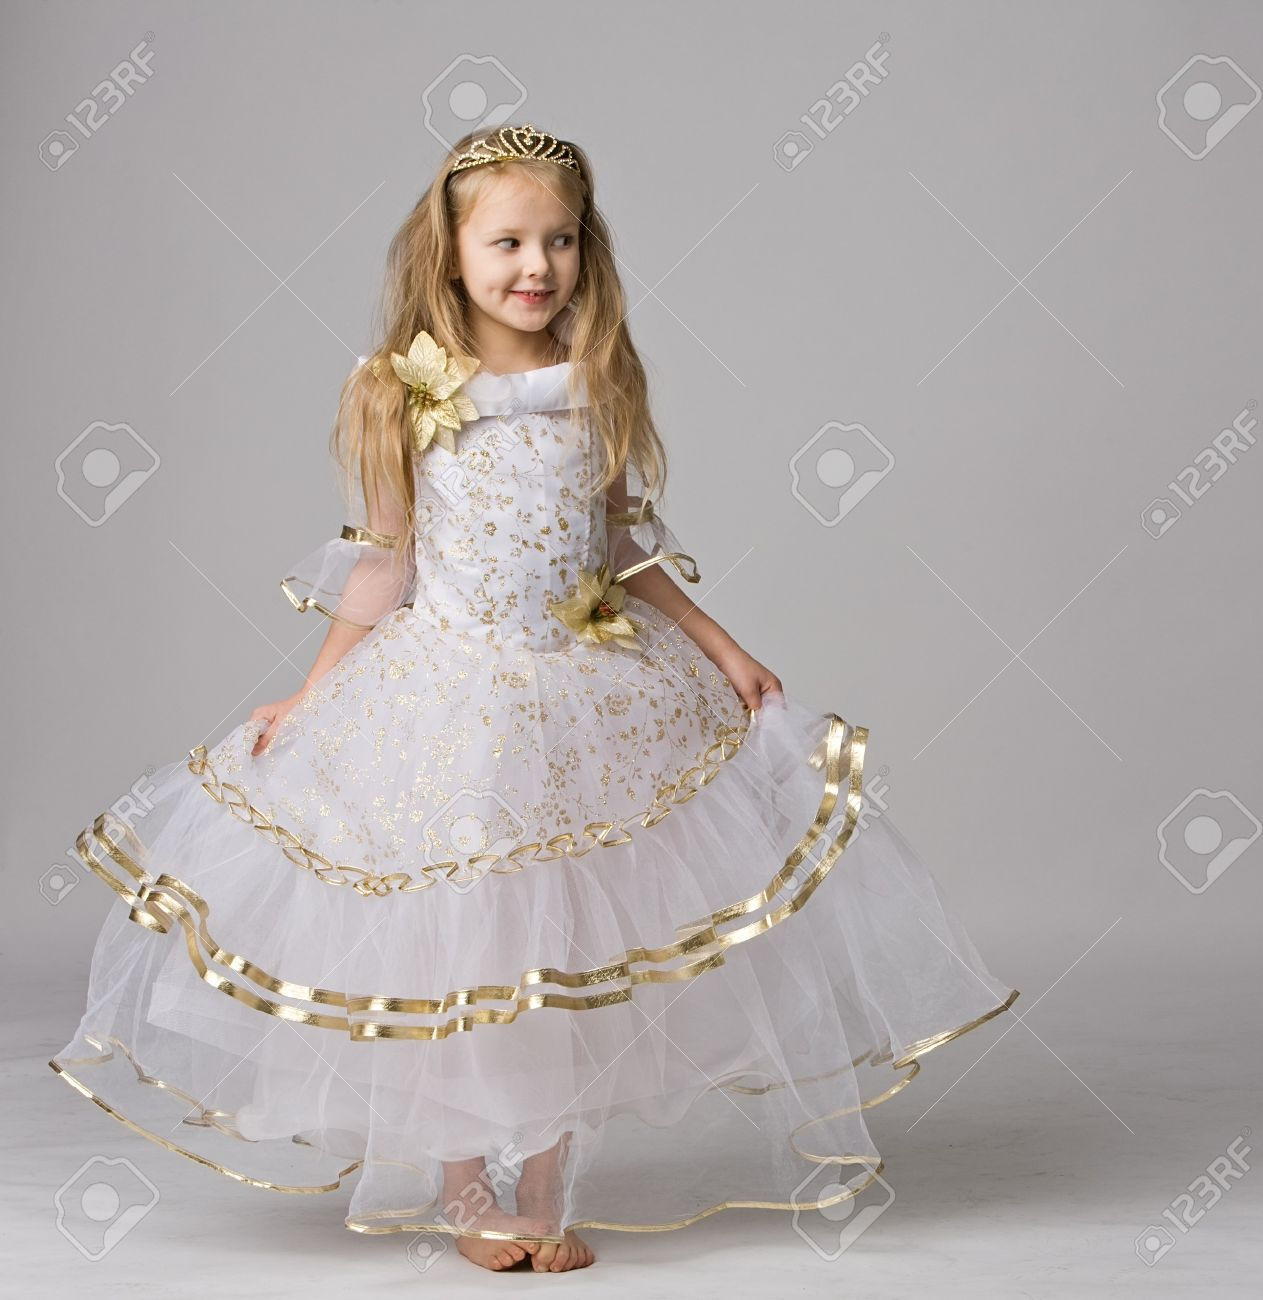 beautiful little girl in dress of princess with diadem on long hair barefoot  stand isolated on